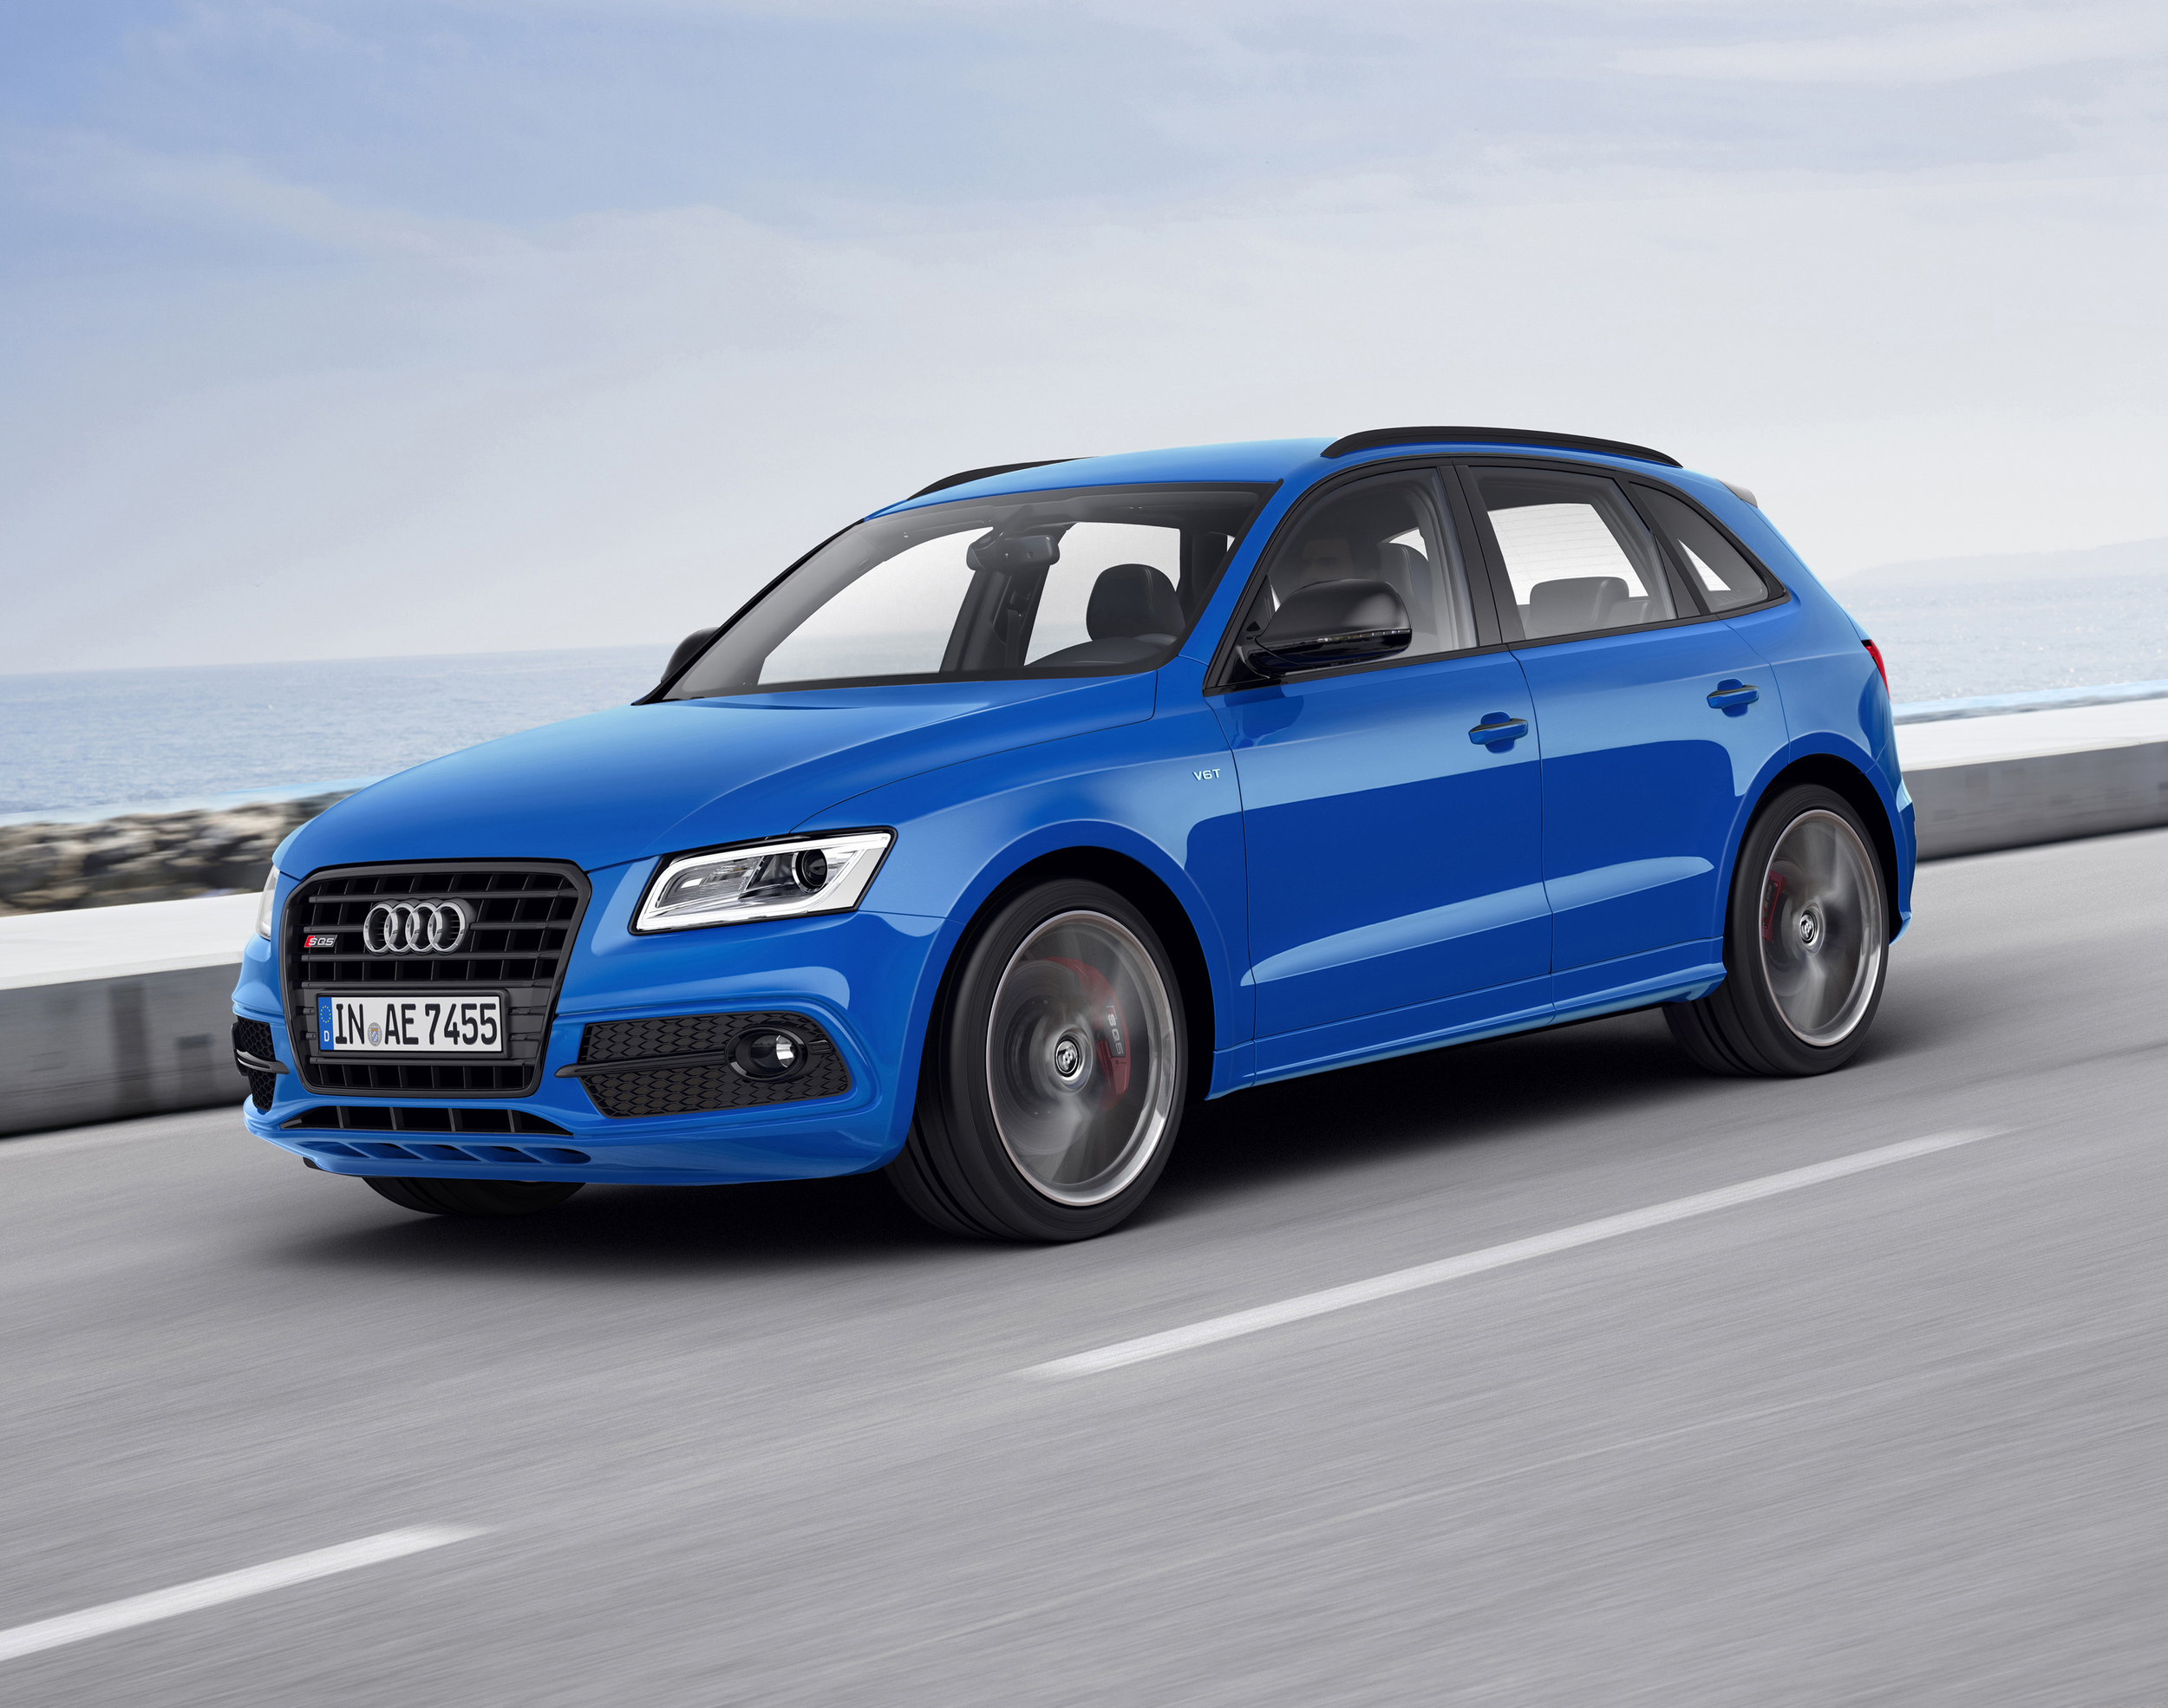 2016 Audi Sq5 Tdi Plus Performance (Photo 8 of 9)